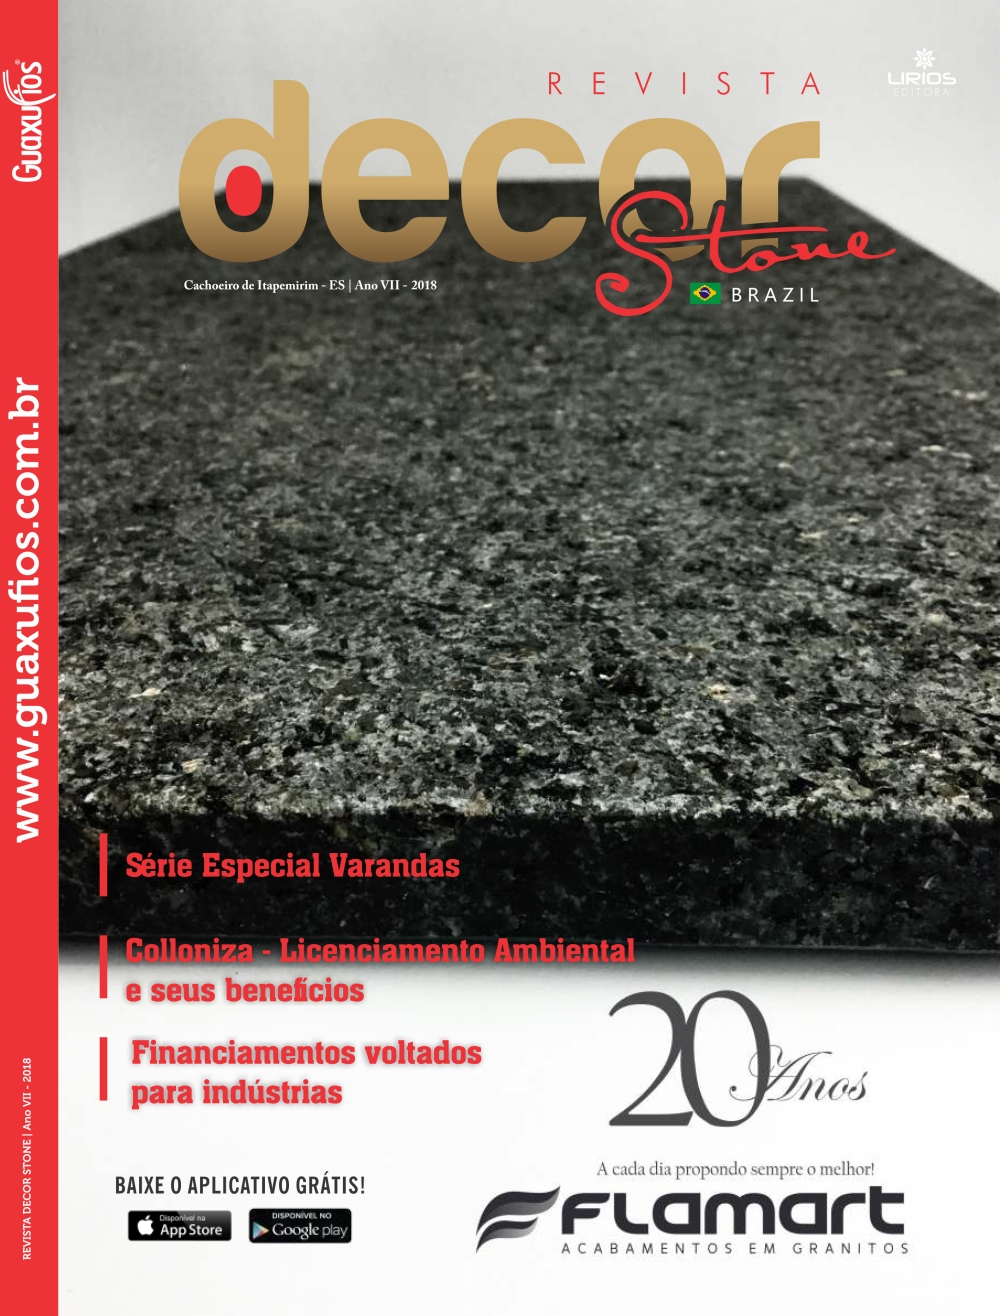 revista decor 12 grafica-1